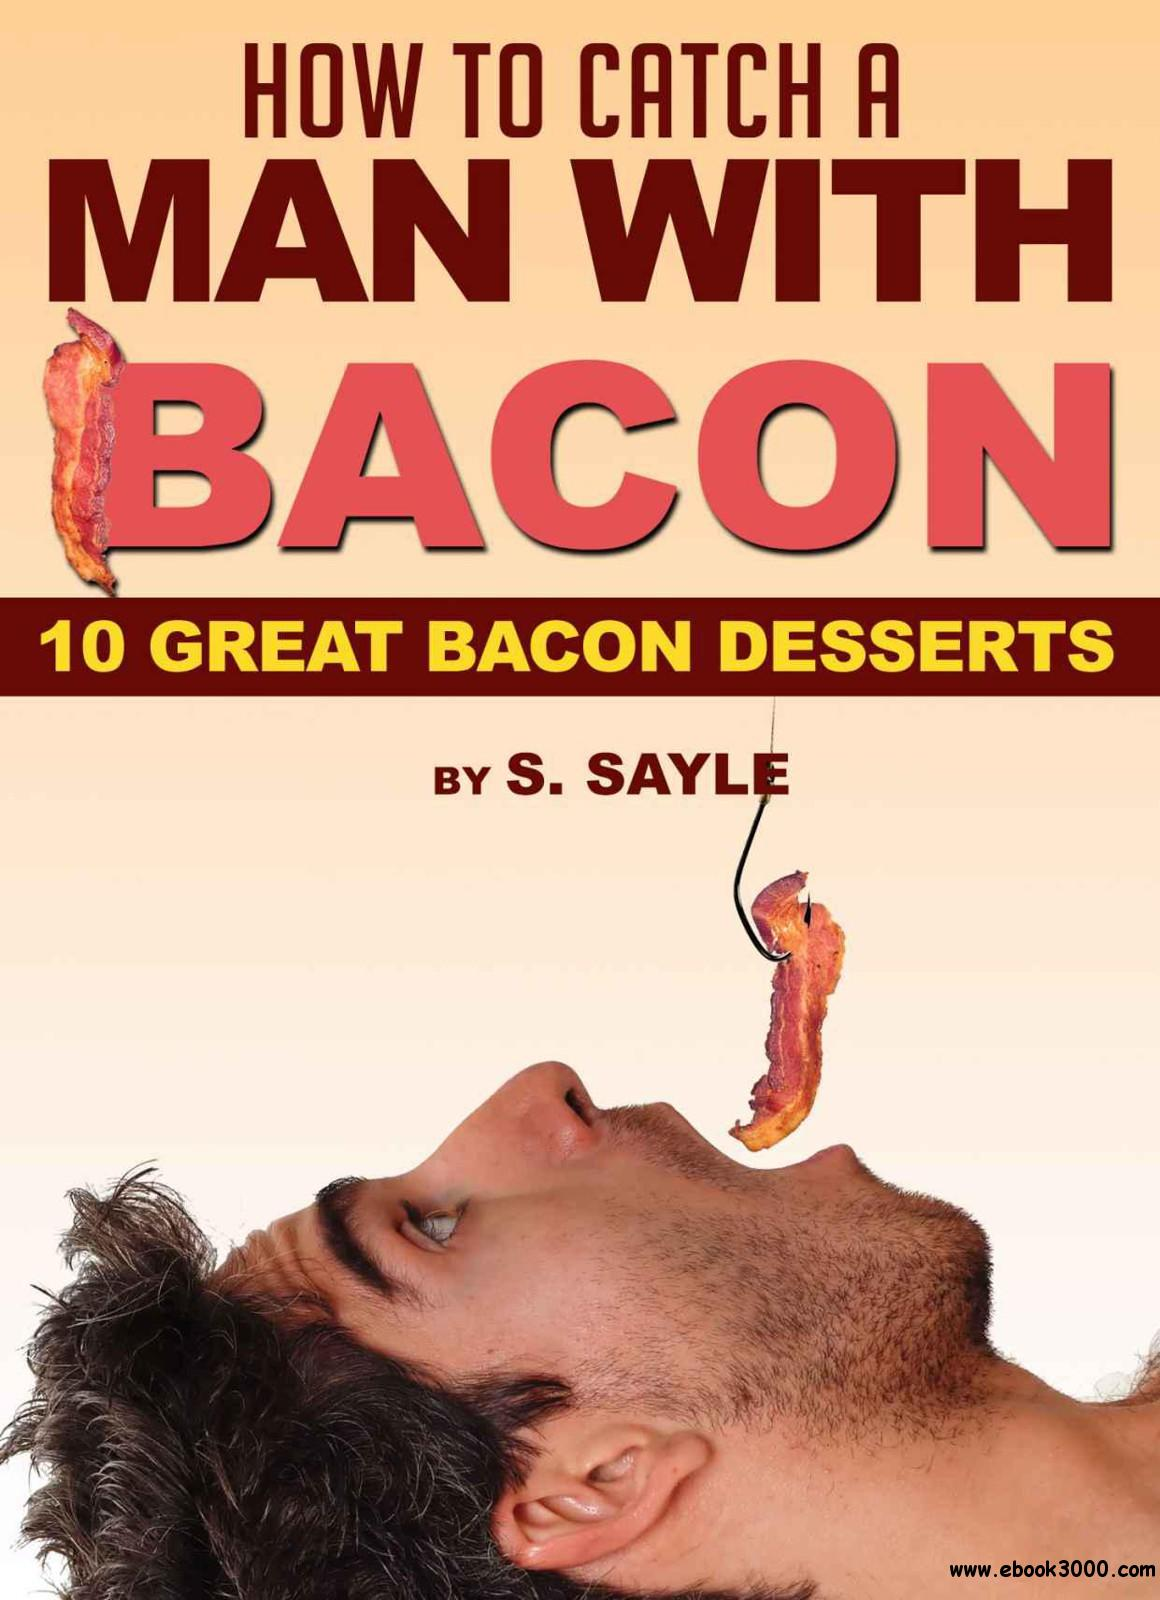 How to Catch a Man with Bacon - 10 Great Bacon Desserts free download